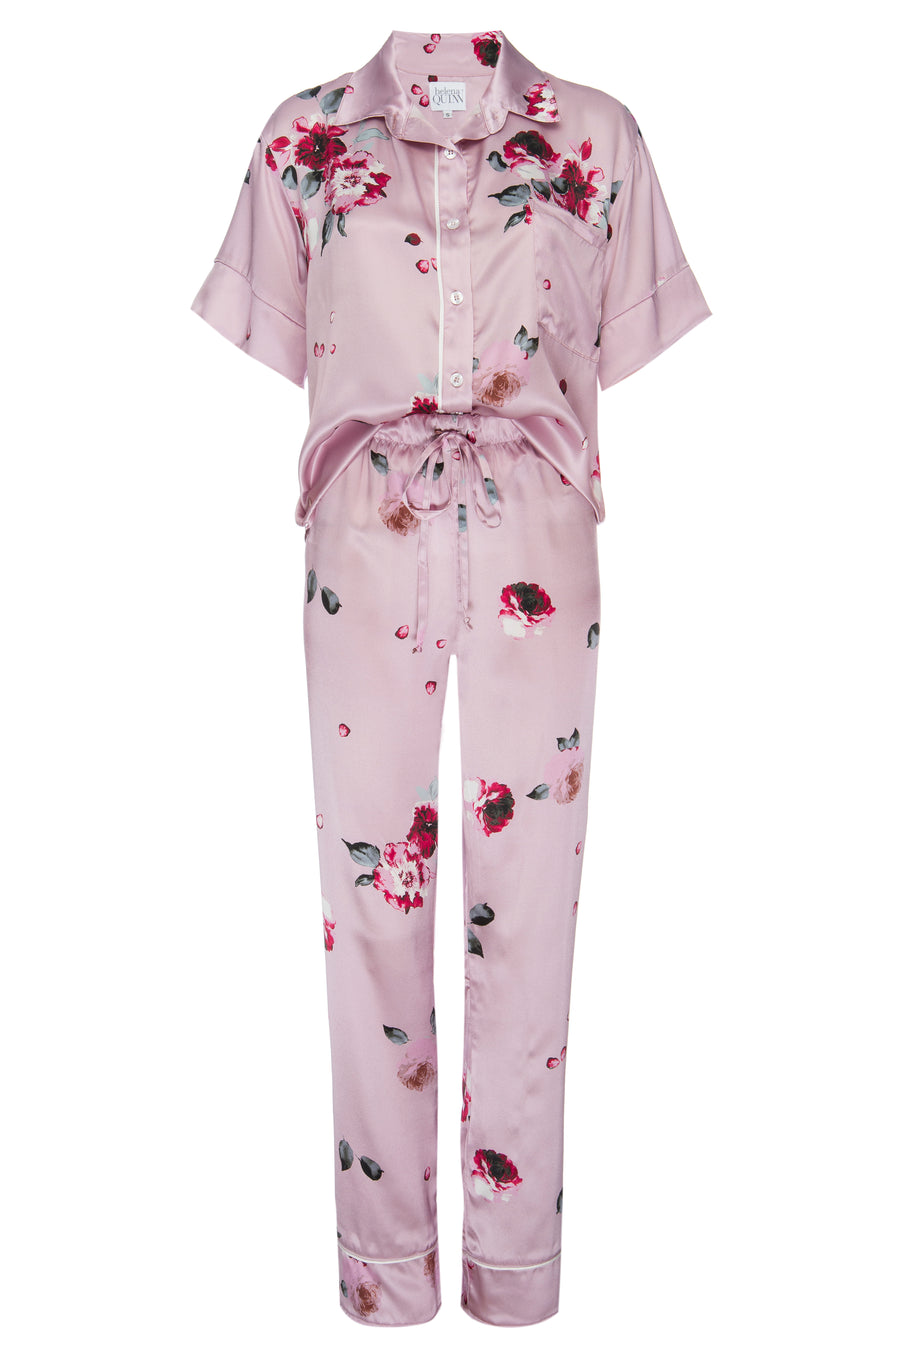 Silk Charmeuse Short Sleeved PJ Top + Pant Set: Blush and Crimson Rose Print